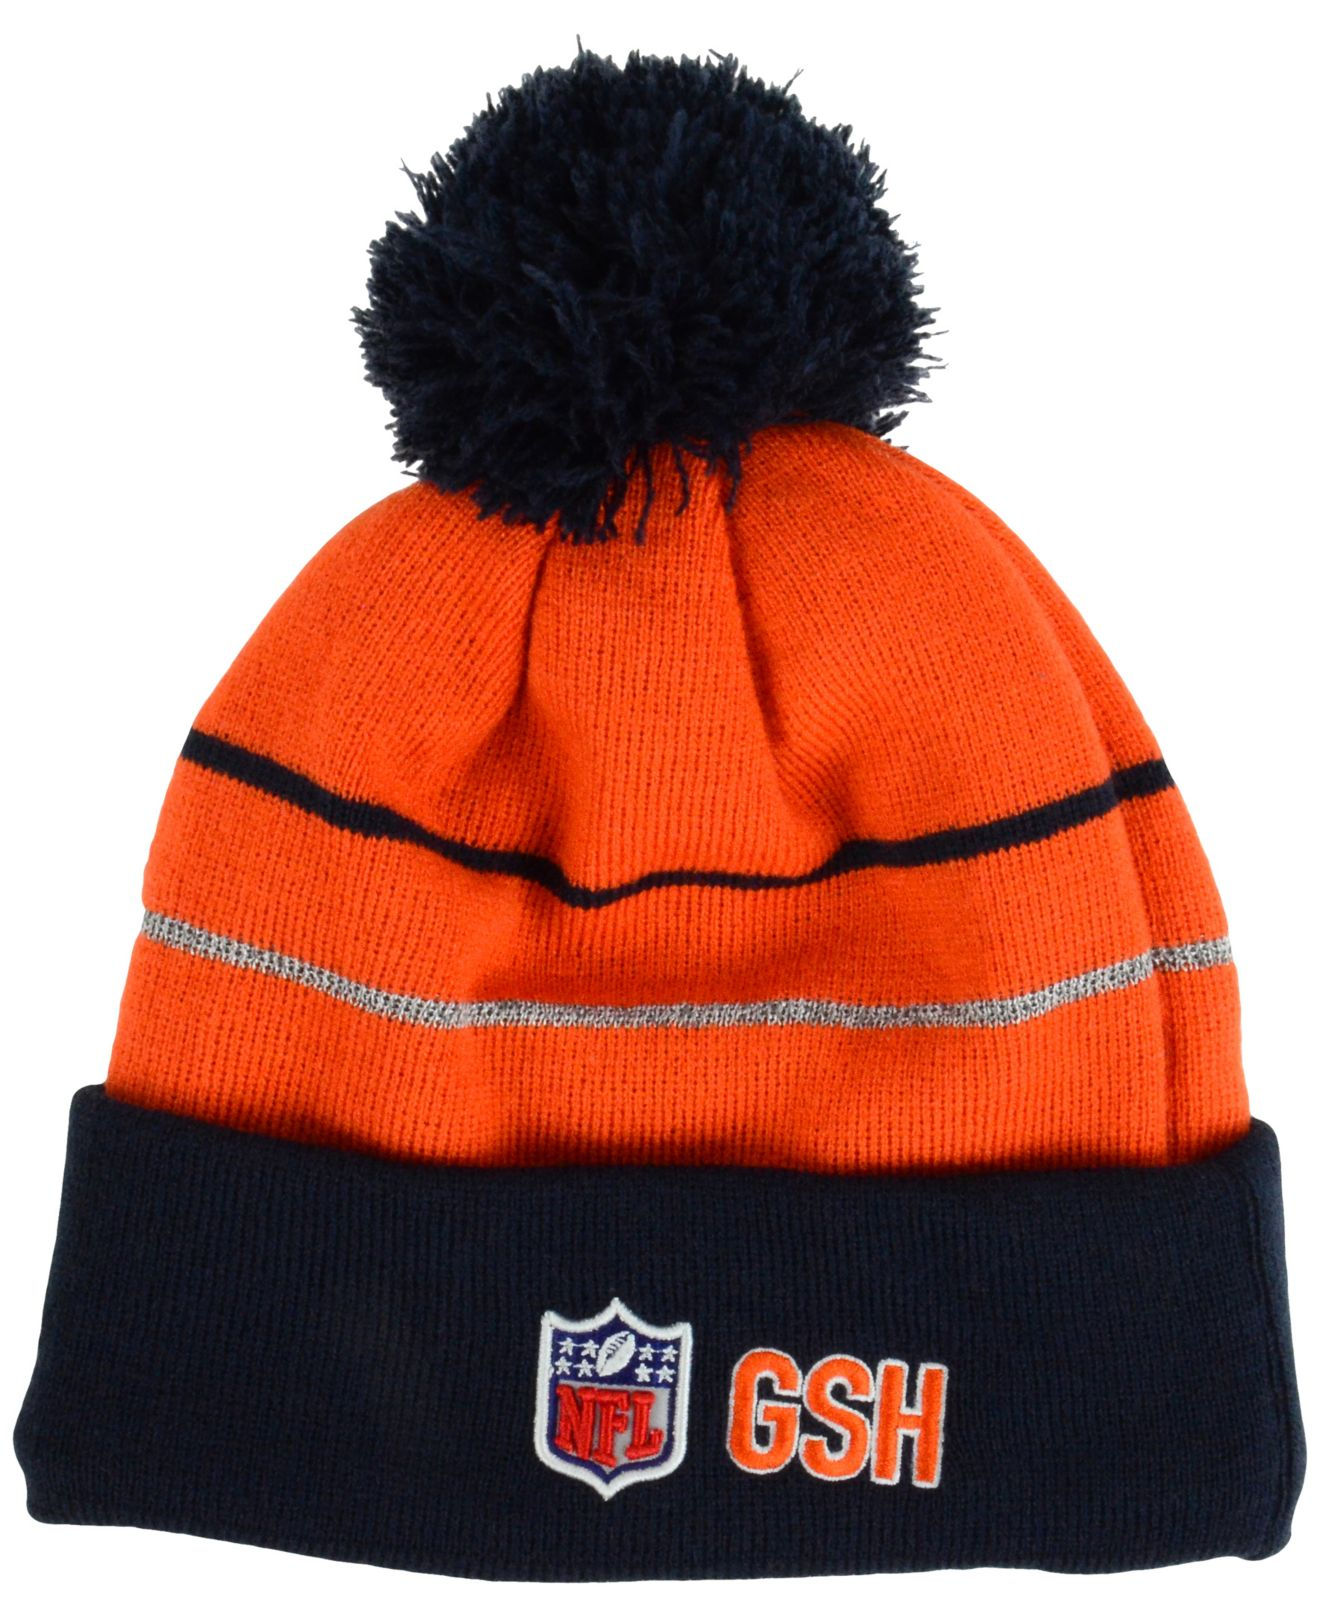 430f0b476 ... hat with pom ad083 269b8  shopping lyst ktz chicago bears thanksgiving  on field reflective sport knit 99962 6e094